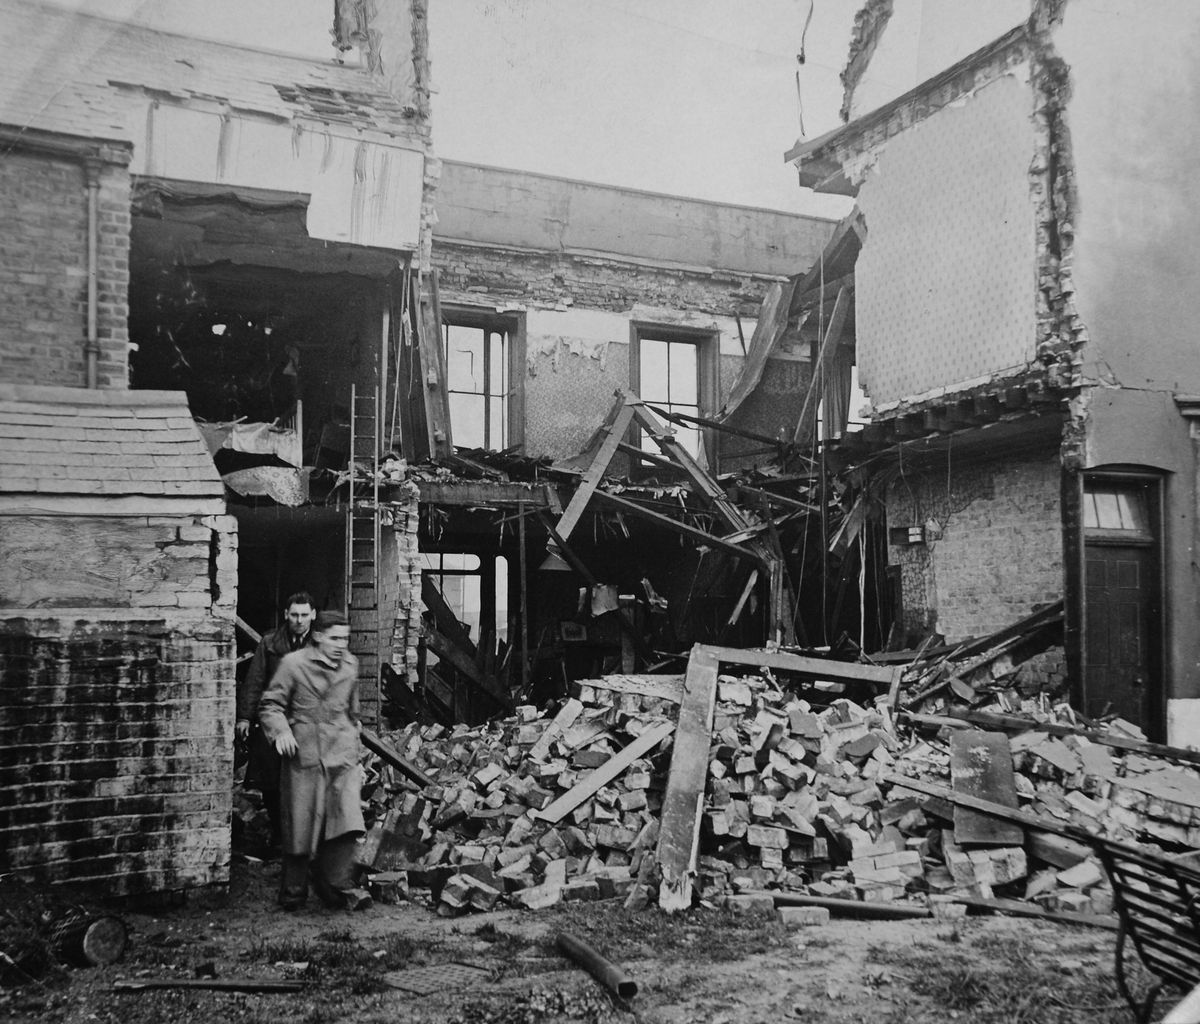 A public house in Tipton, in 1940, after bombing